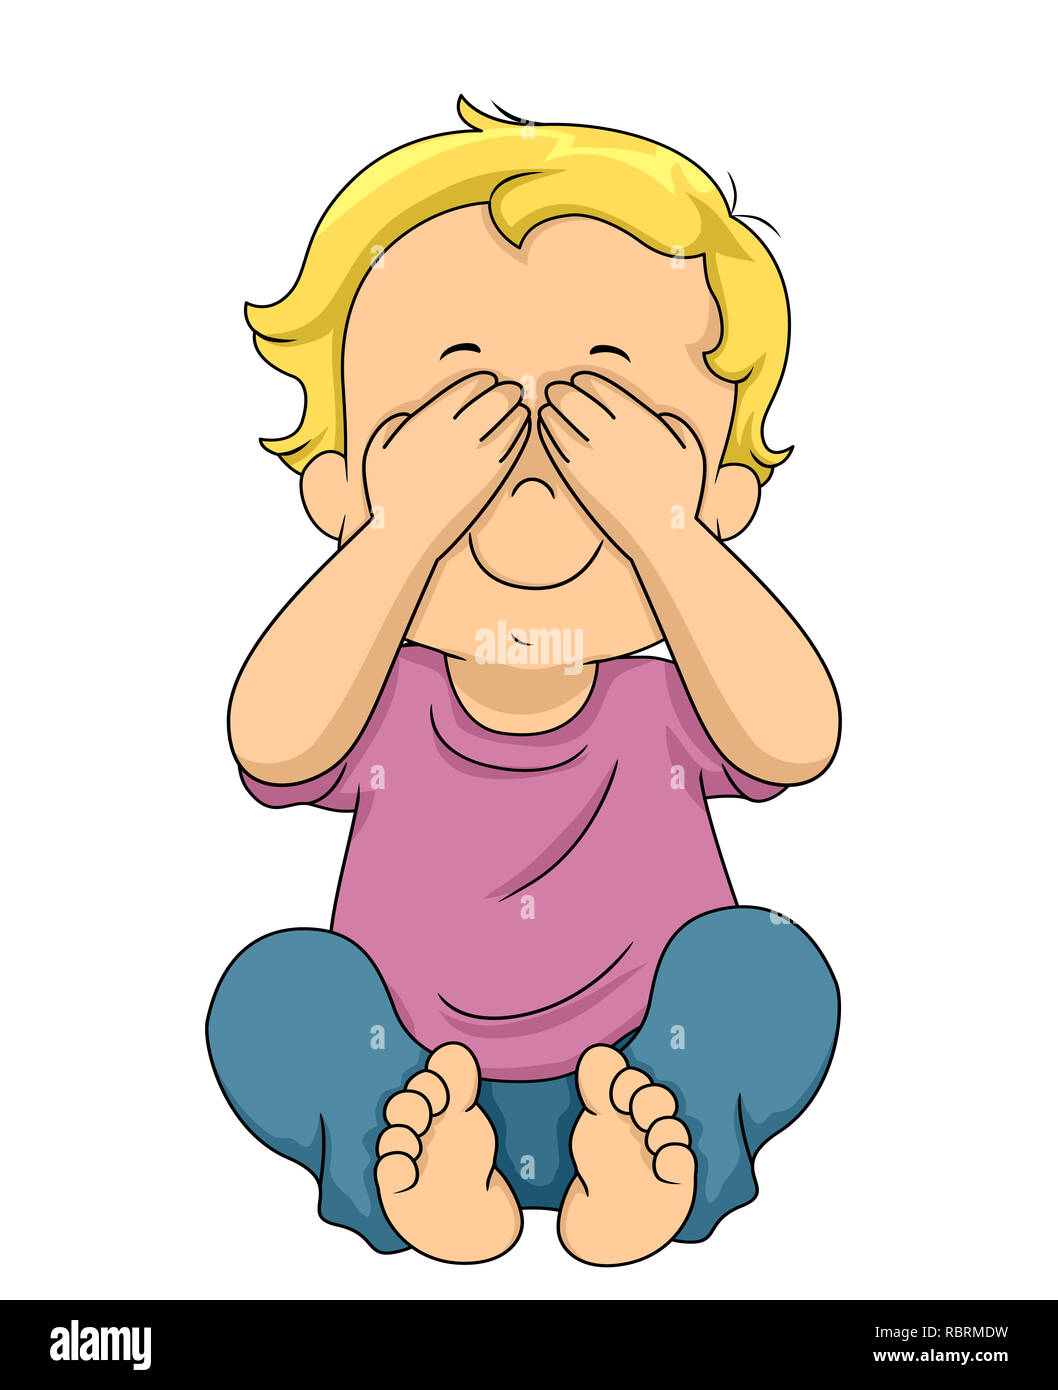 Illustration of a Kid Boy Toddler Covering His Eyes Playing Peekaboo or Hide and Seek - Stock Image